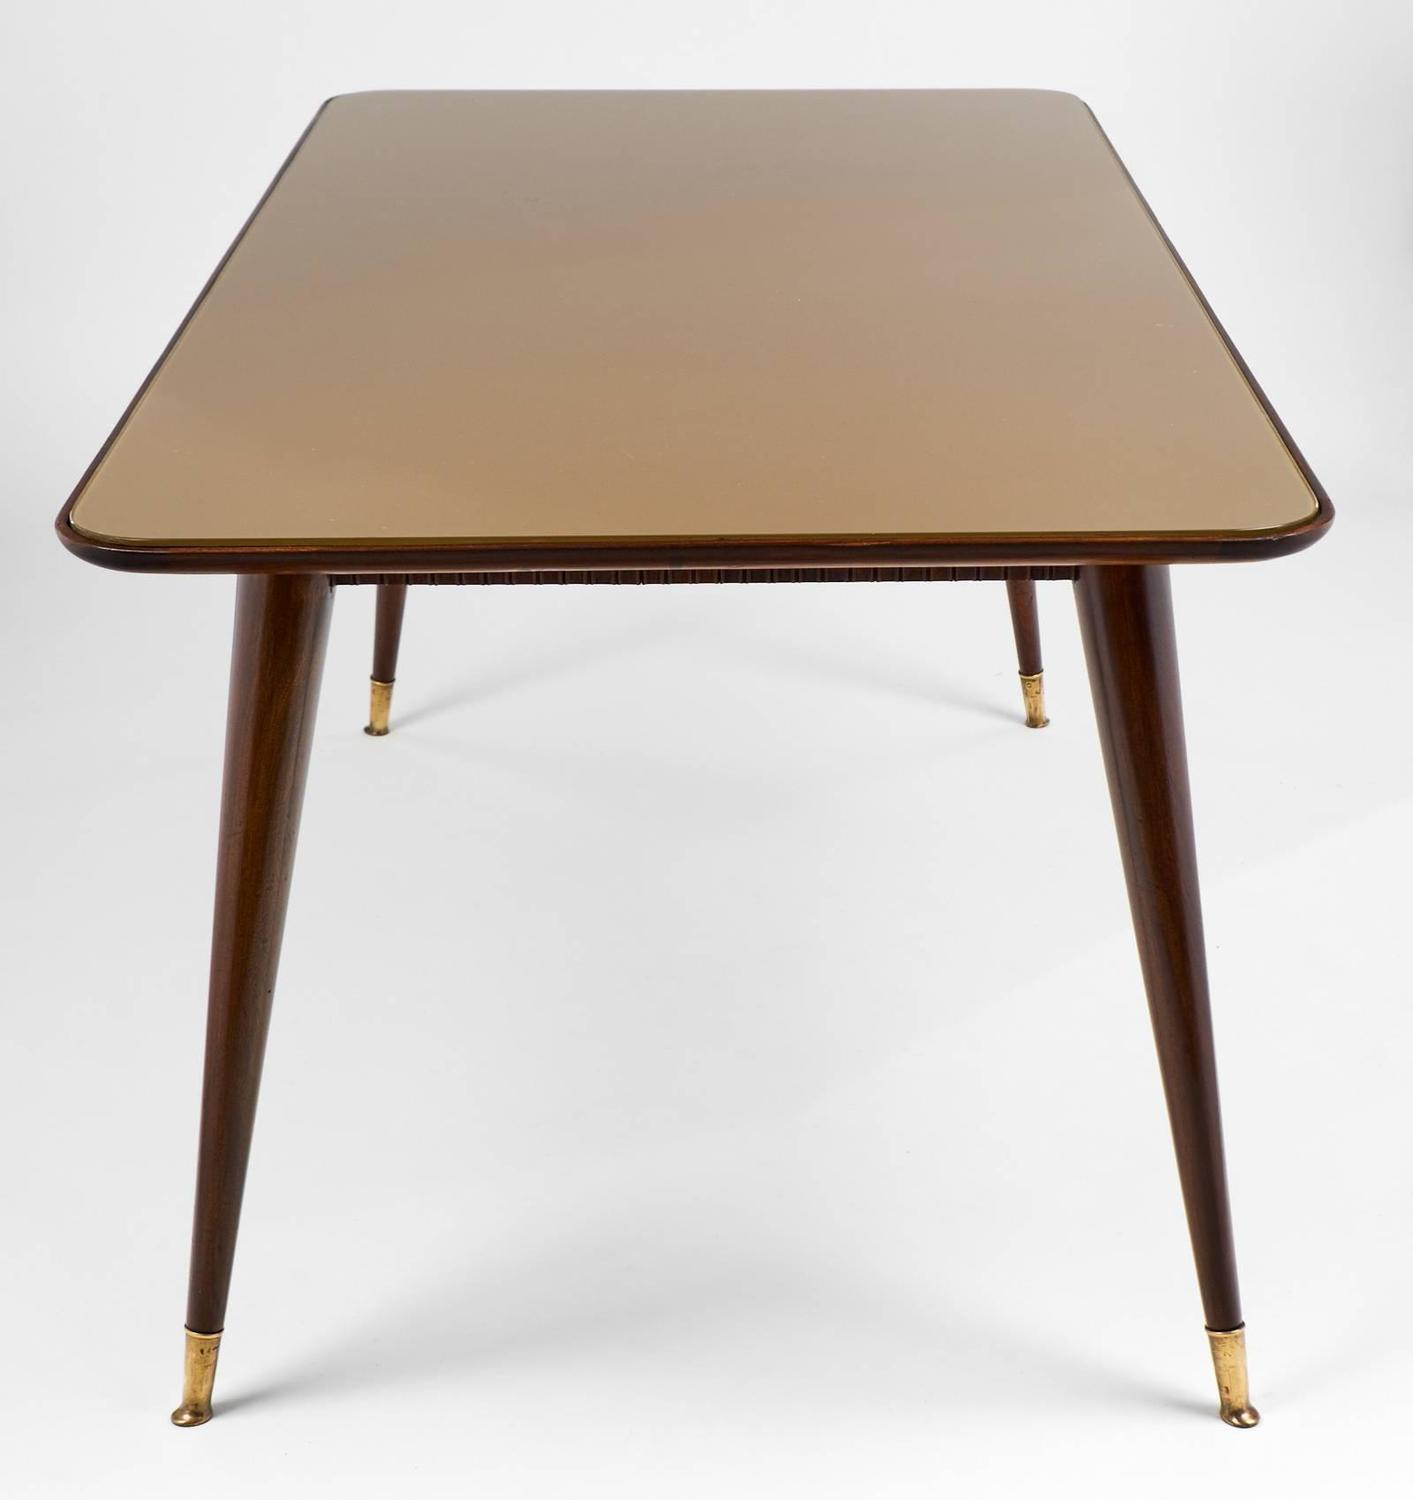 Mid century modern italian dining room table for sale at for Italian dining table